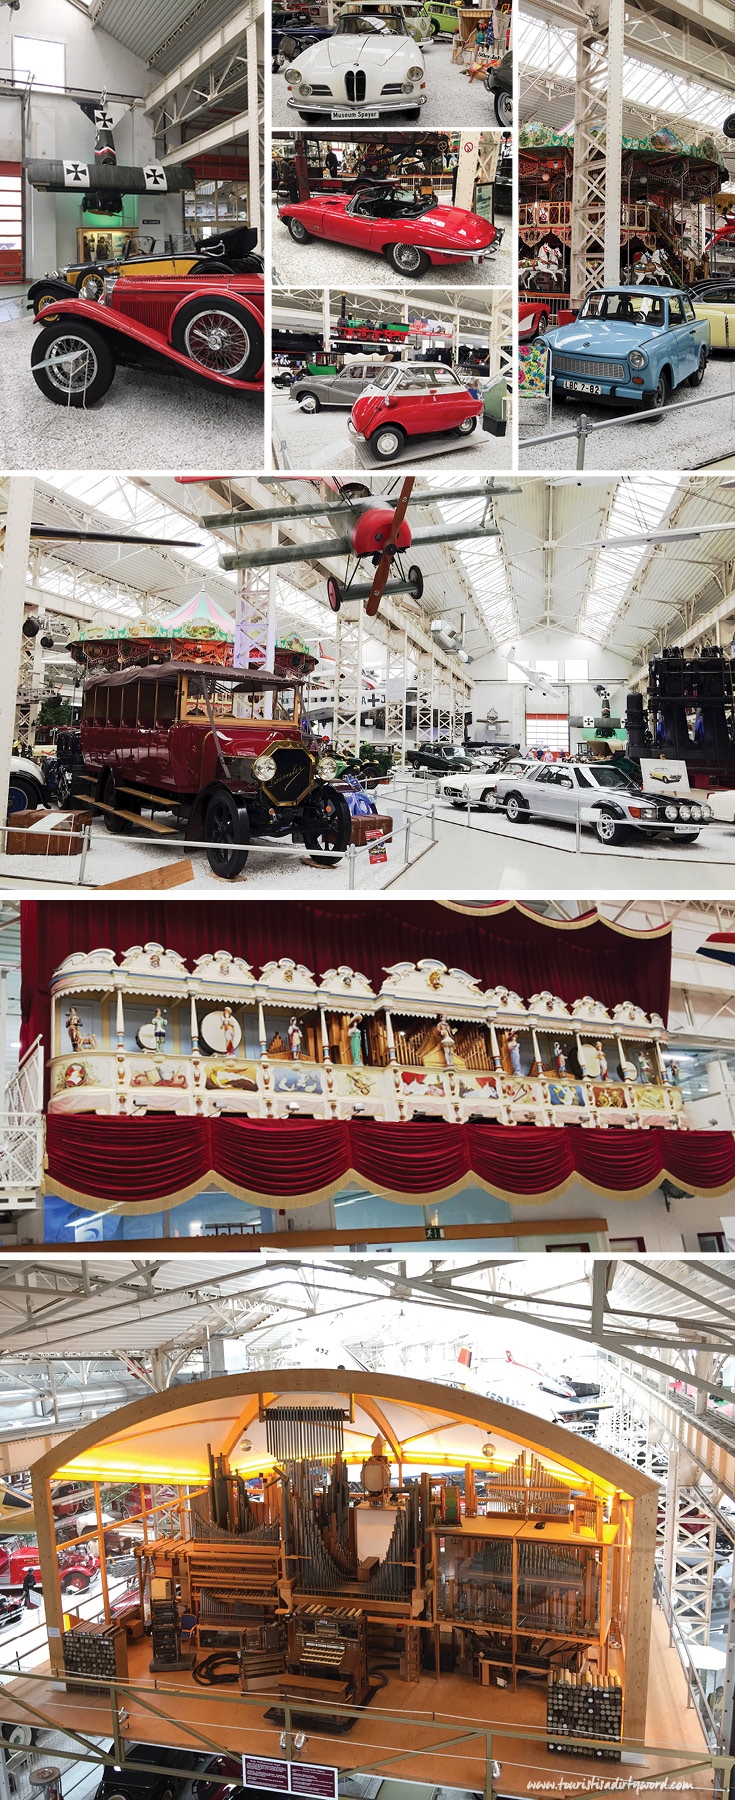 "In the huge hall called ""Liller Halle"", a factory building from 1913, you'll discover trains, planes, cars, carousels, and more."